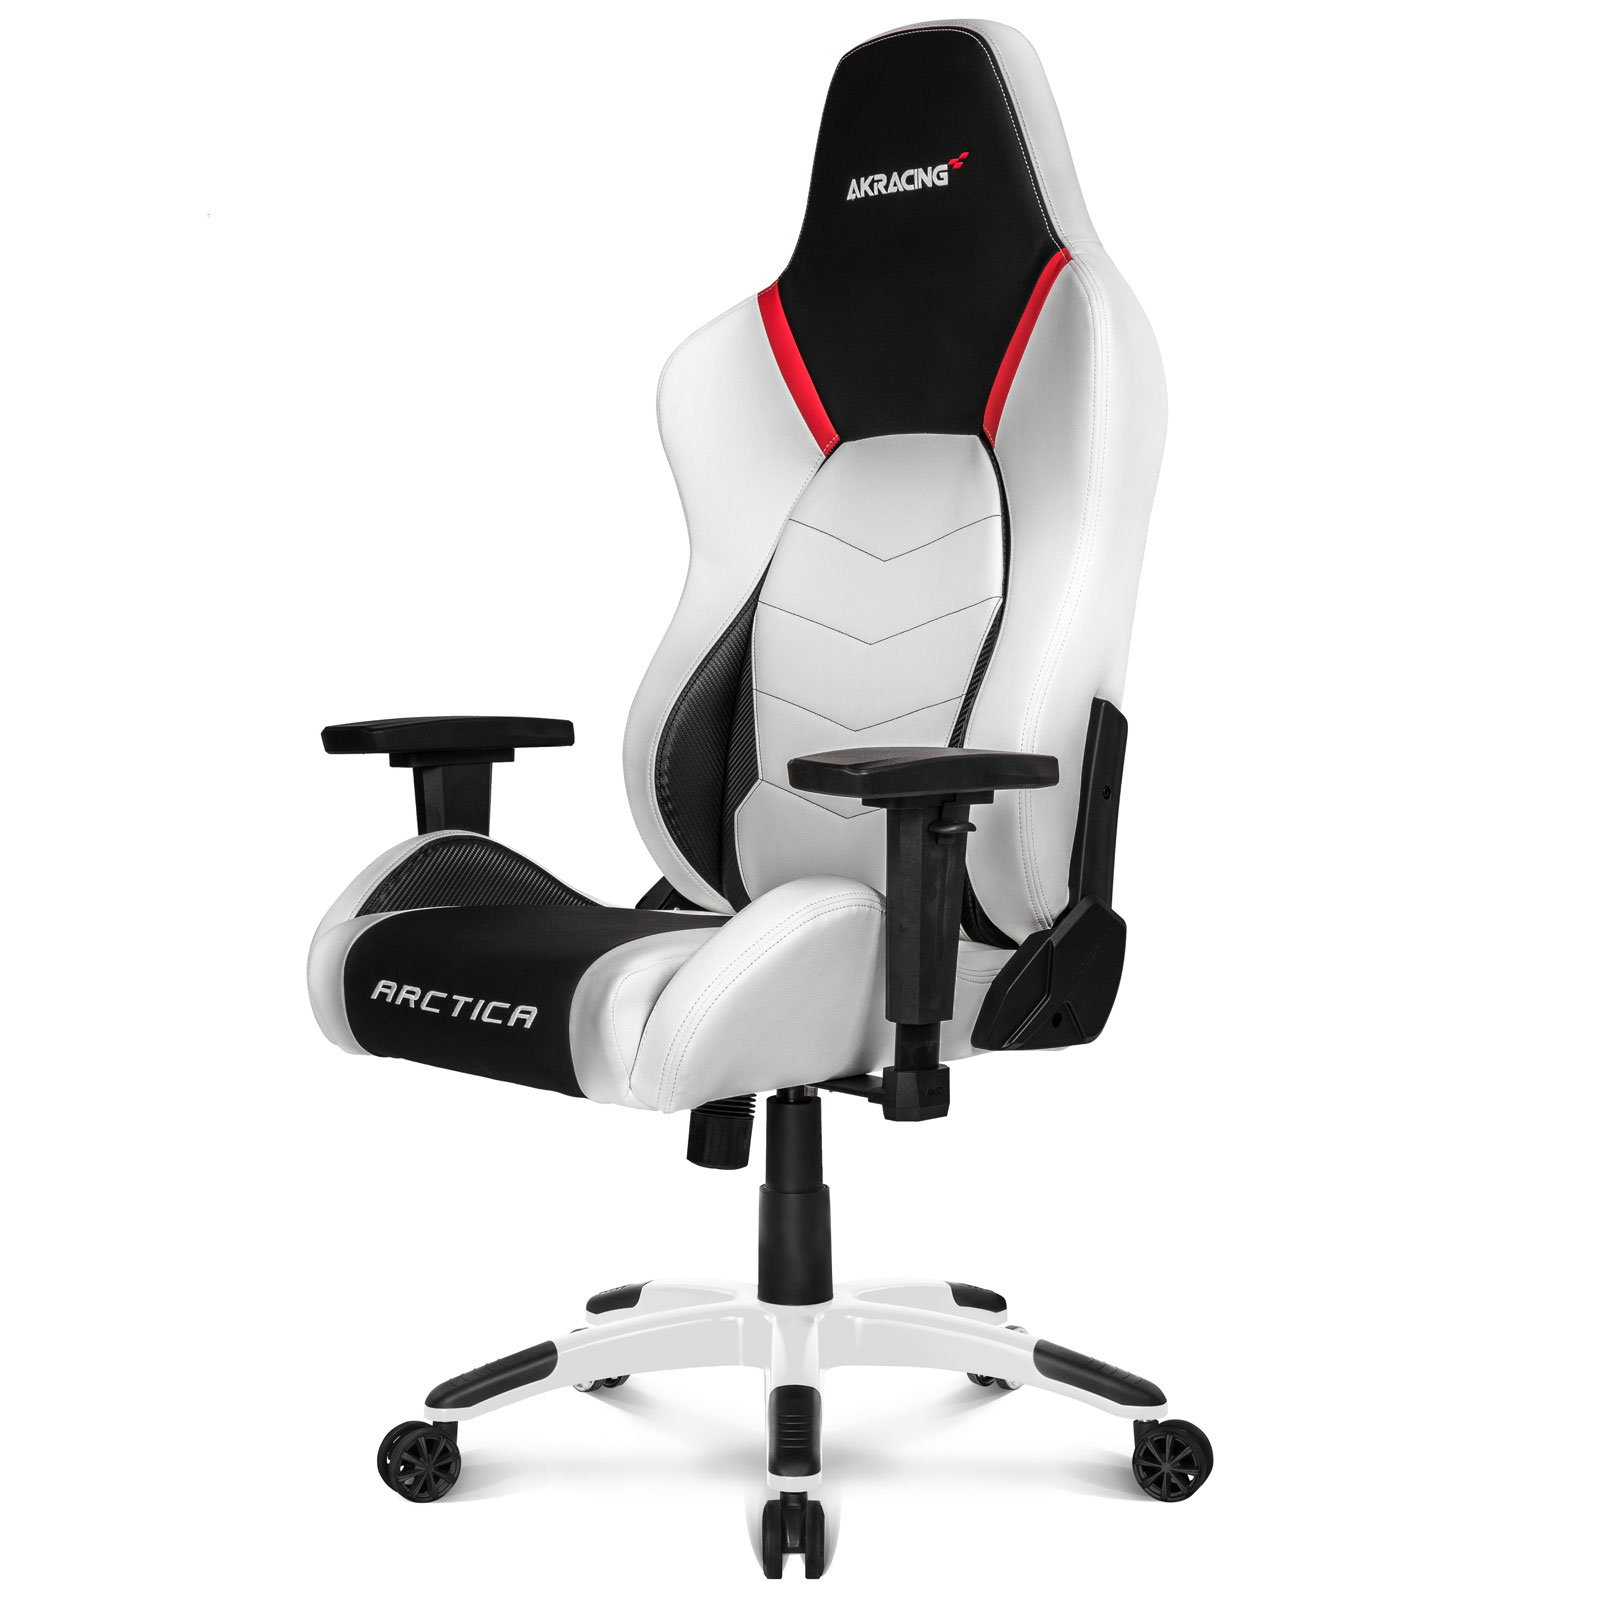 akracing arctica fauteuil gamer akracing sur. Black Bedroom Furniture Sets. Home Design Ideas